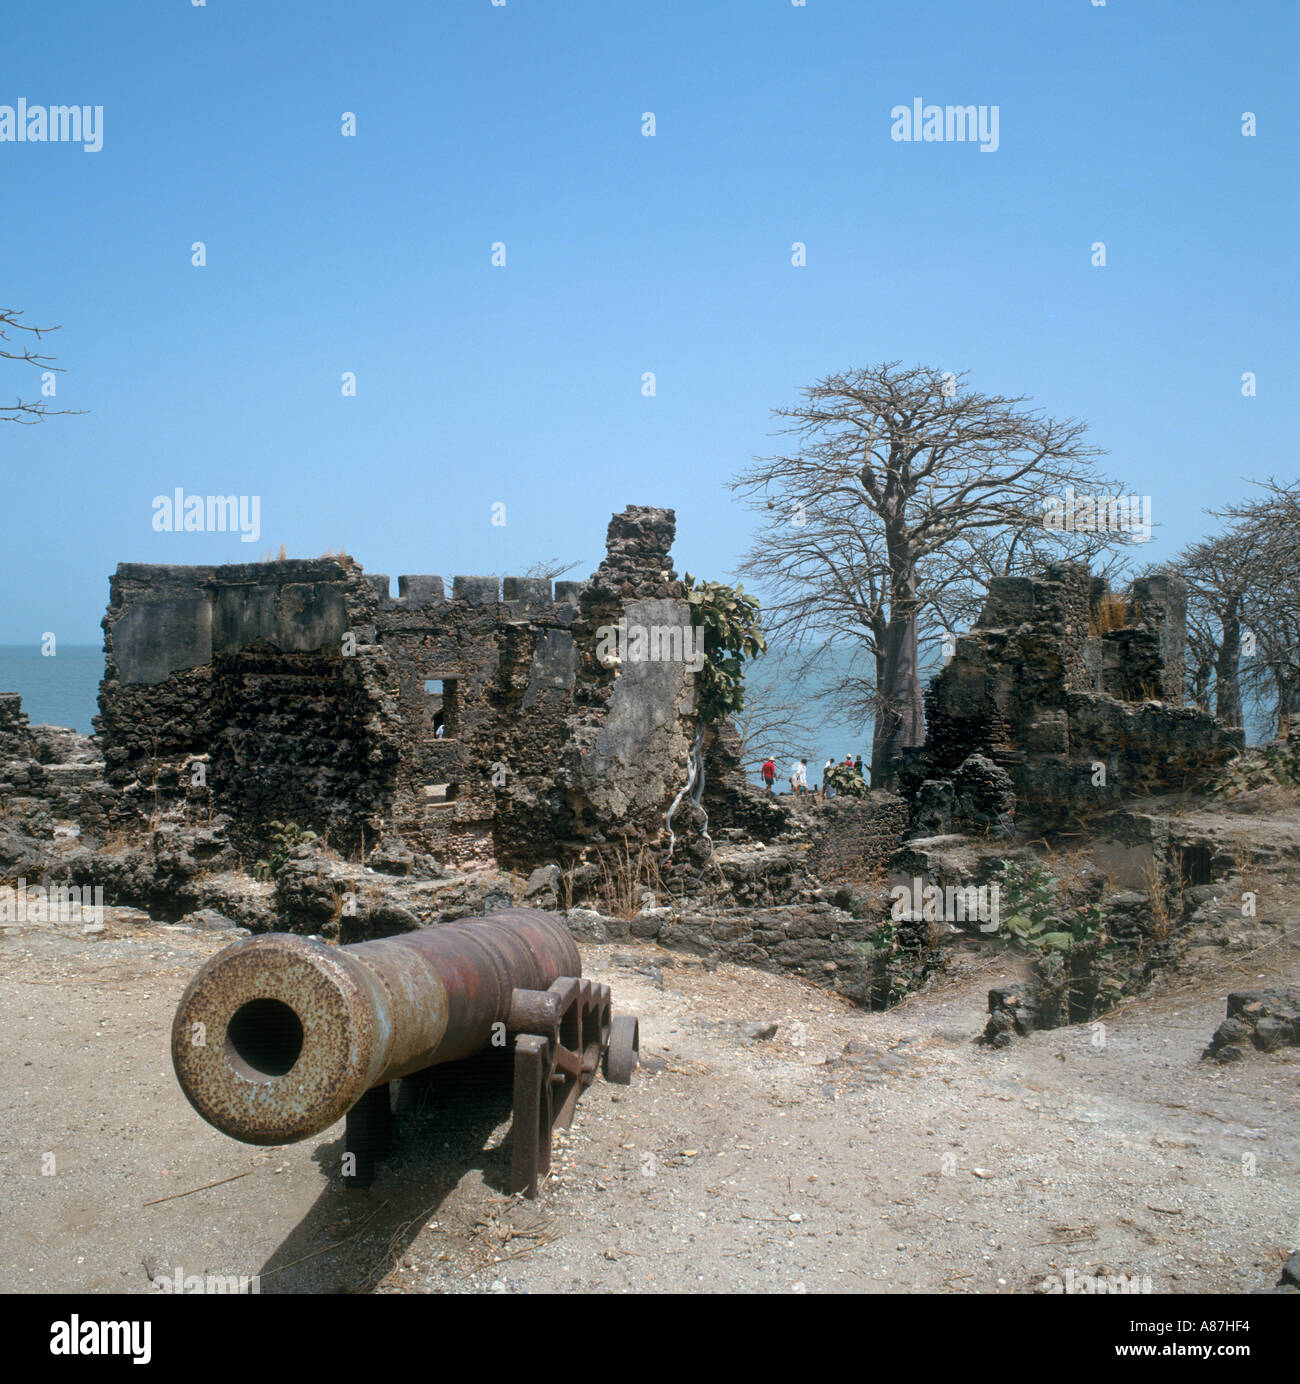 Fort on James Island, Roots Excursion, The Gambia, West Africa - Stock Image